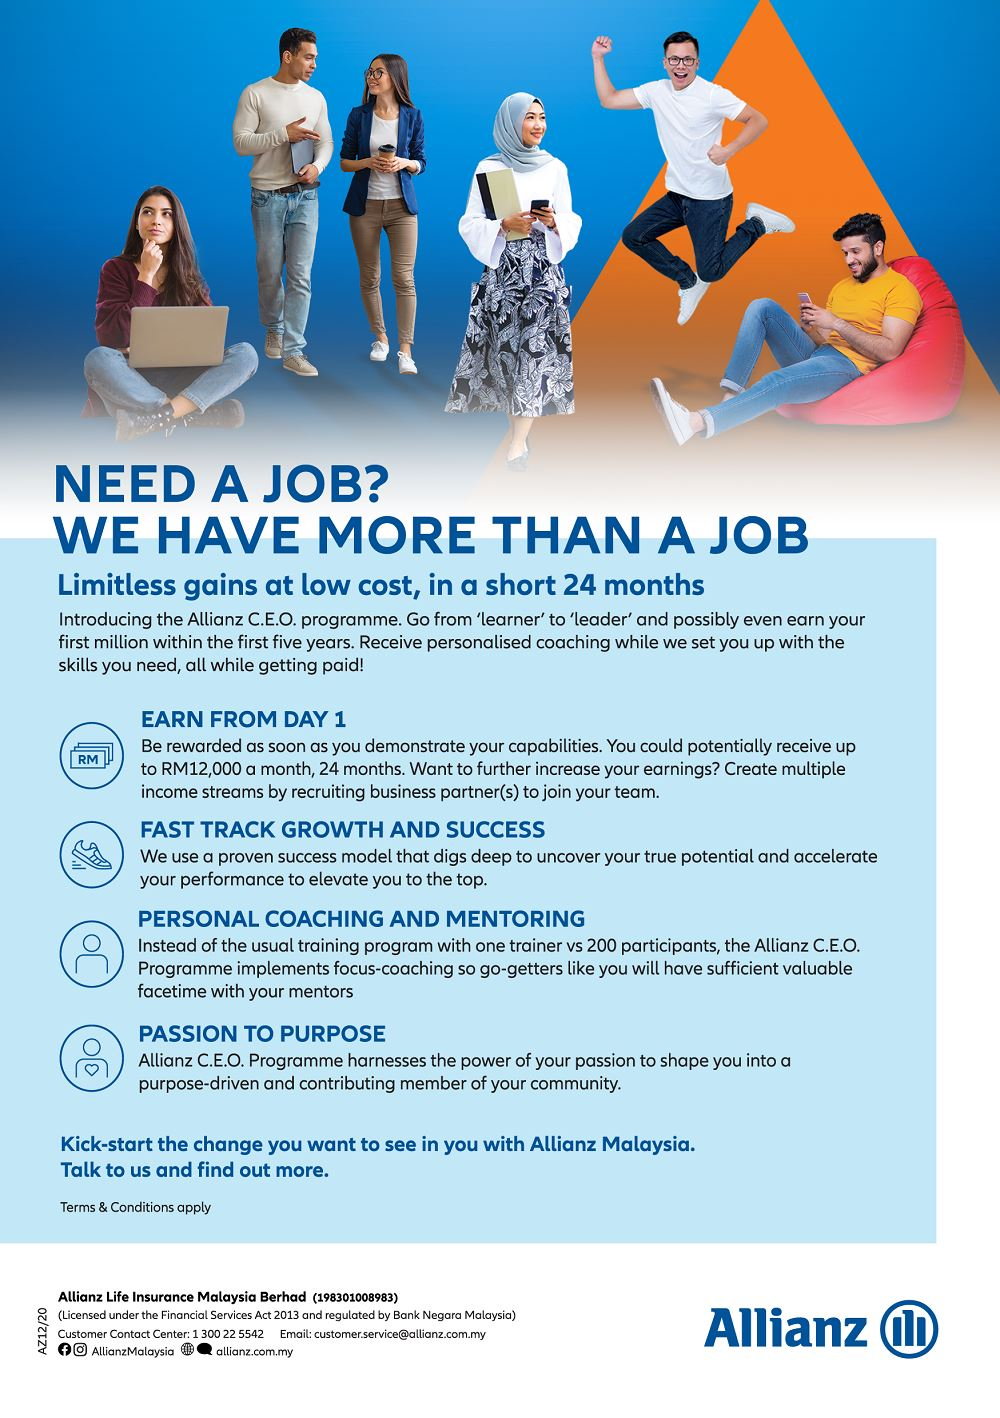 join the allianz c.e.o.programme and become an a-list insurance agent in 24 months!